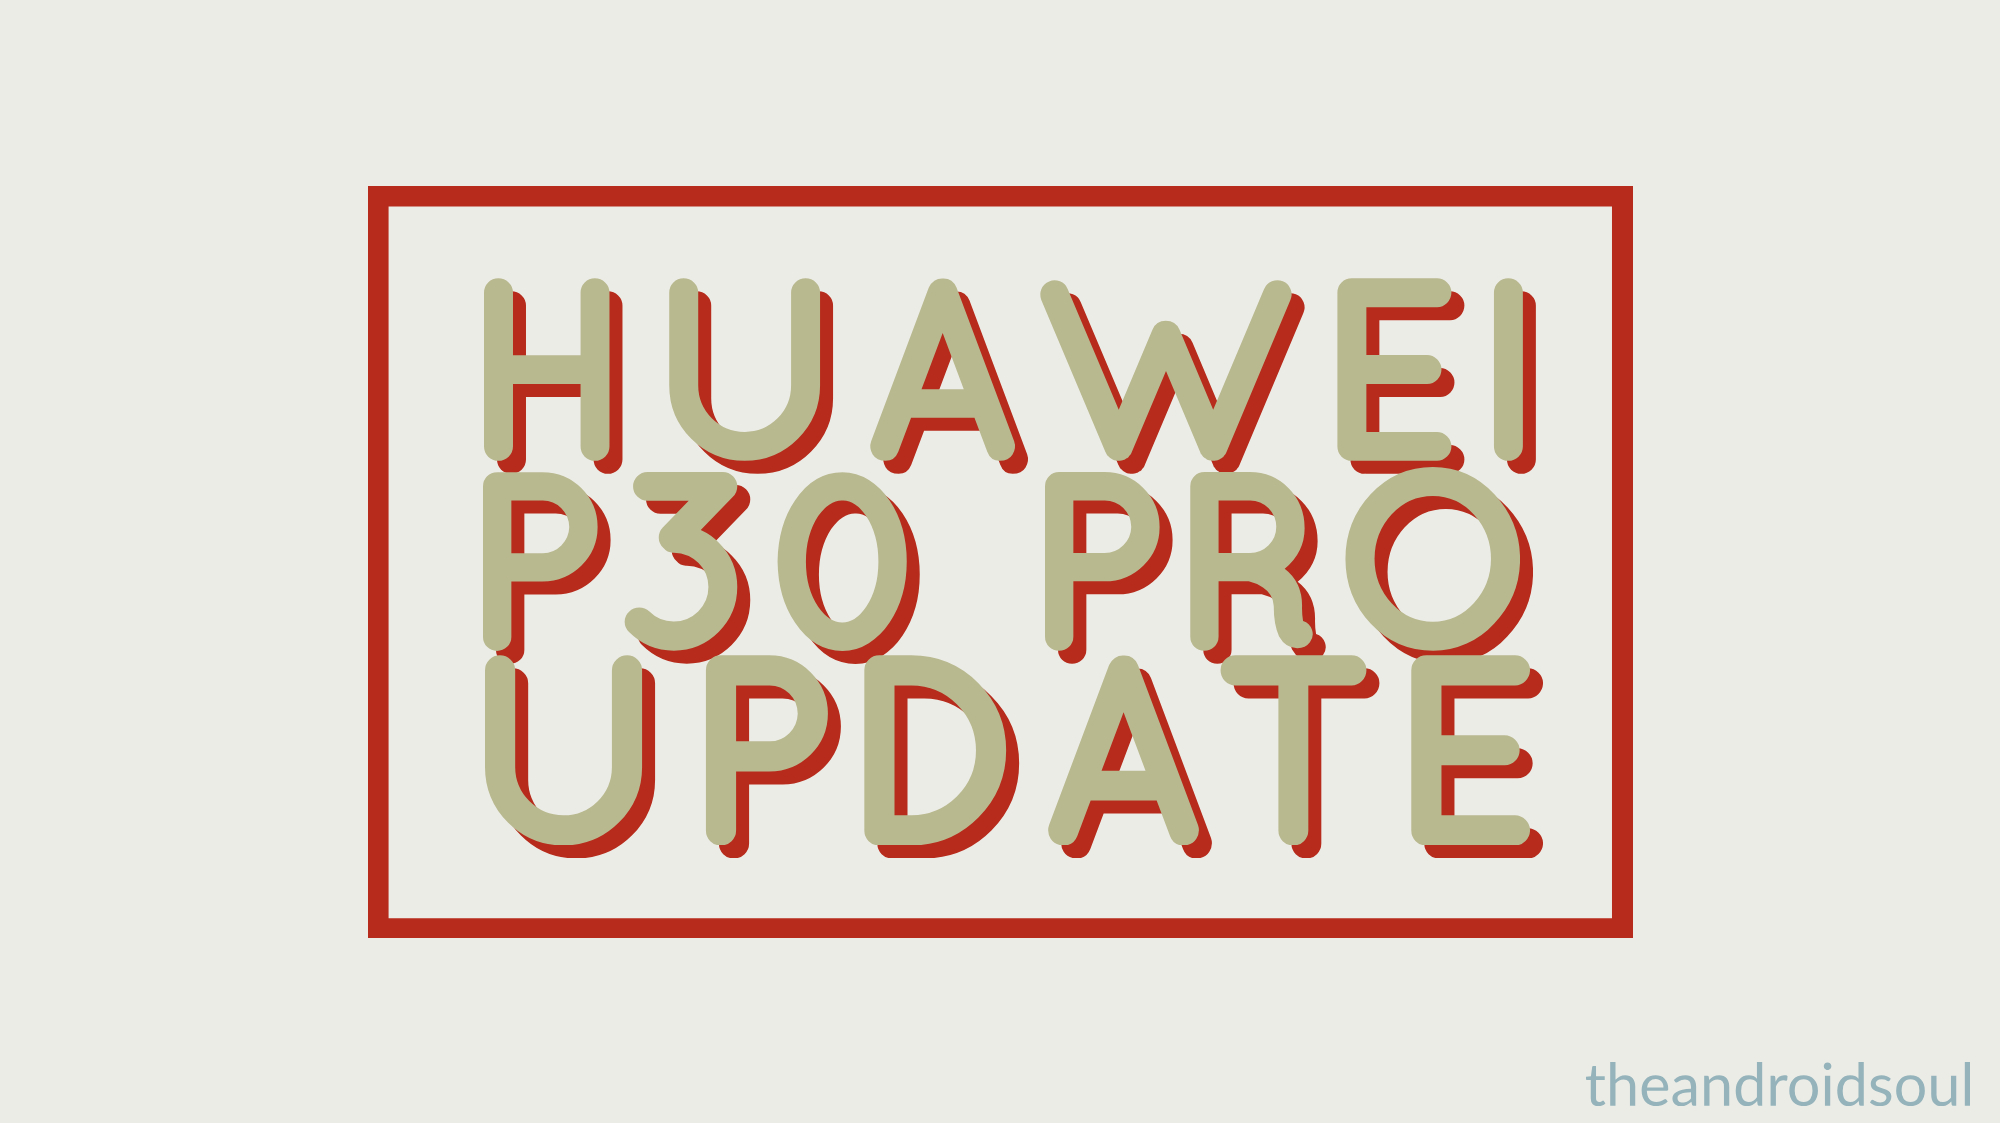 Huawei P30 Pro update: EMUI 10 based on Android Q arrives